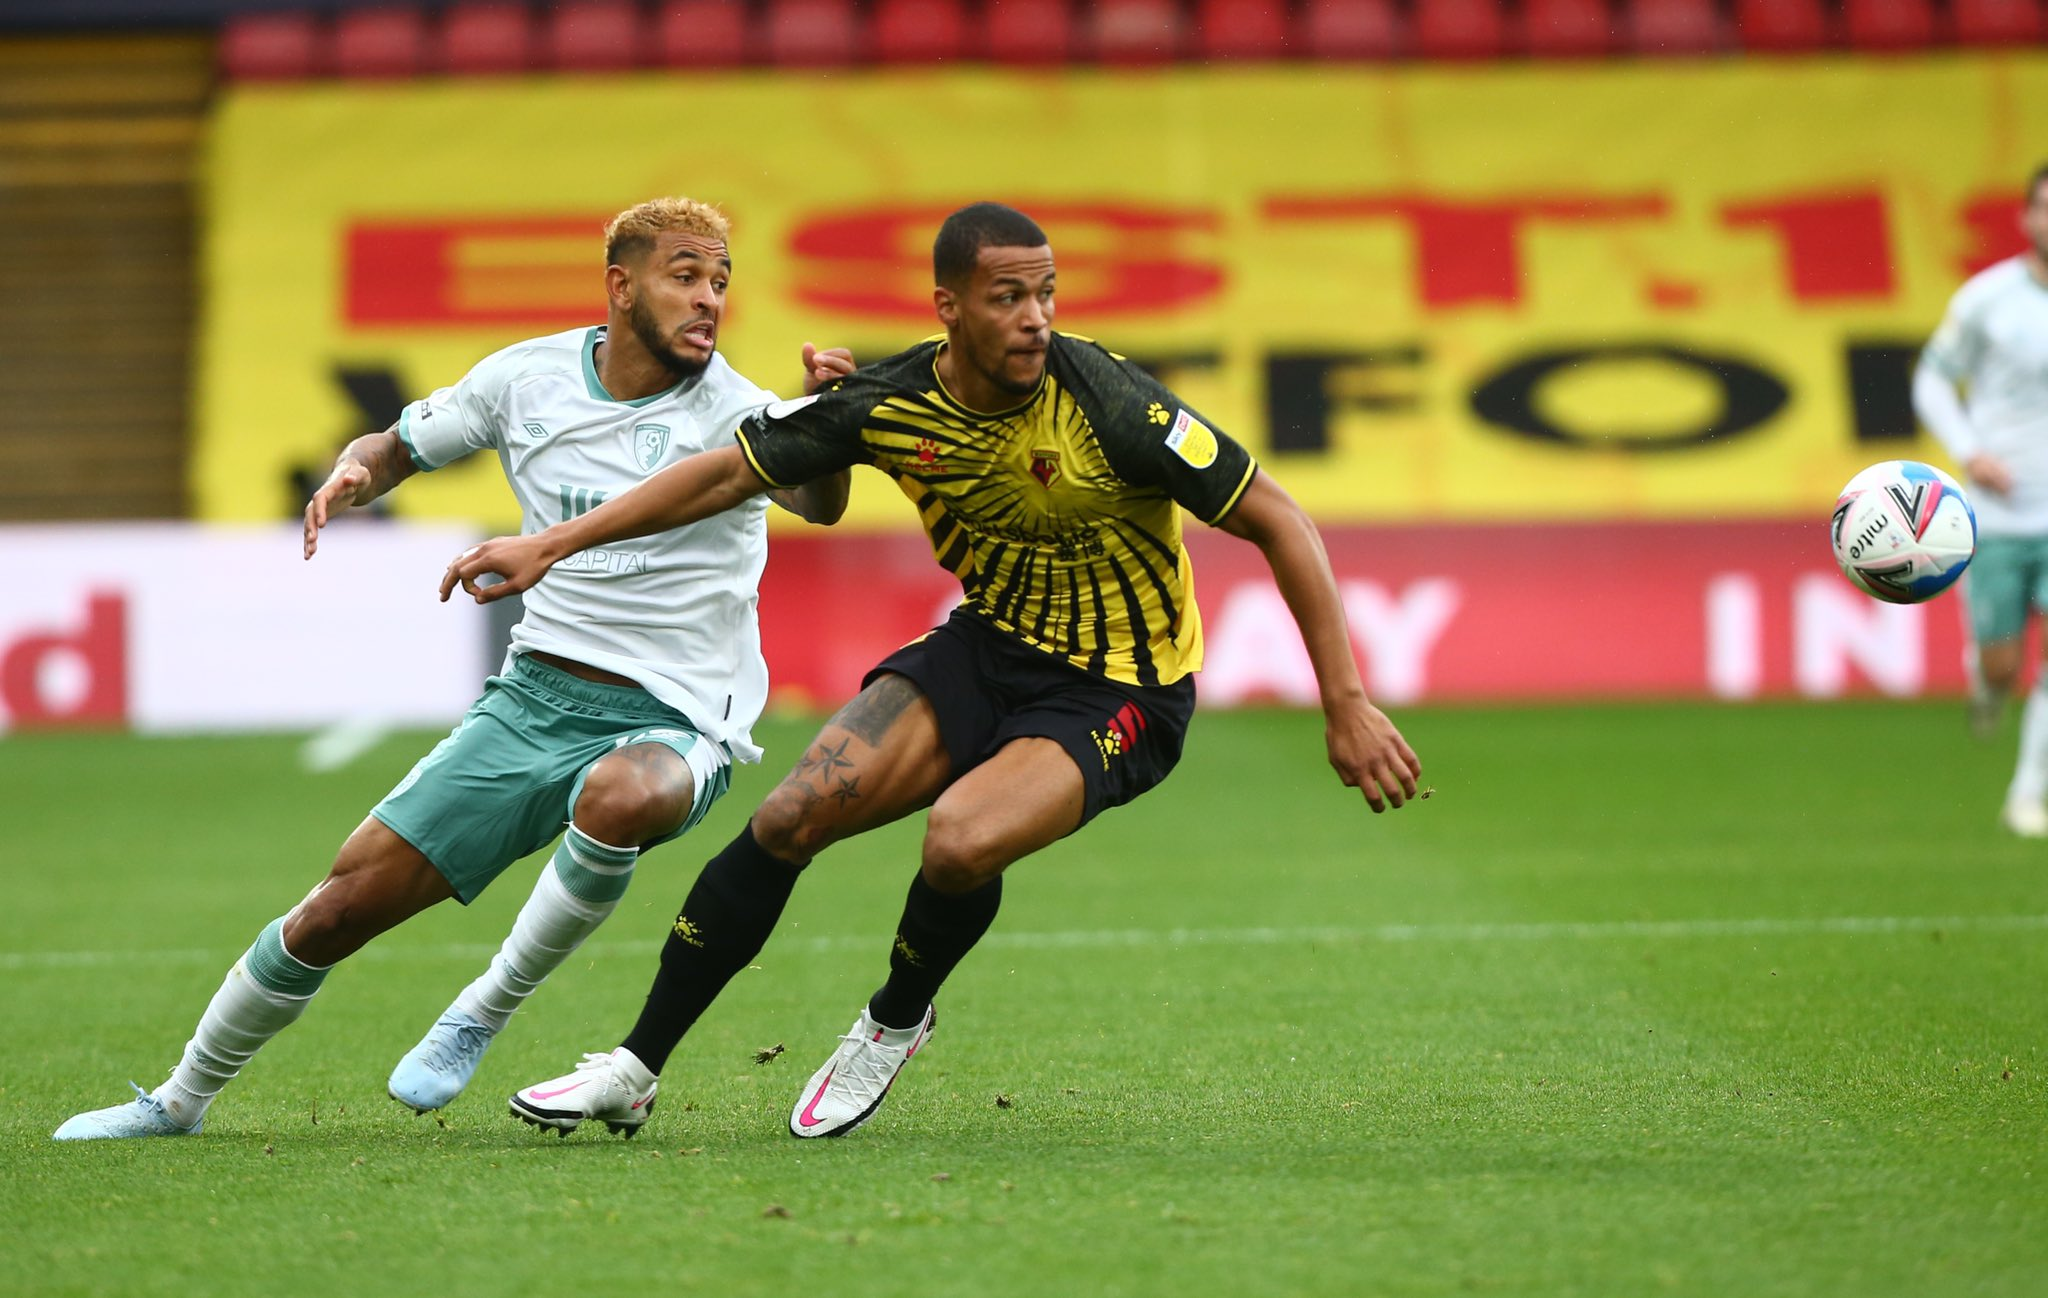 Championship: Troost-Ekong Scores As Watford Beat Coventry City At Home